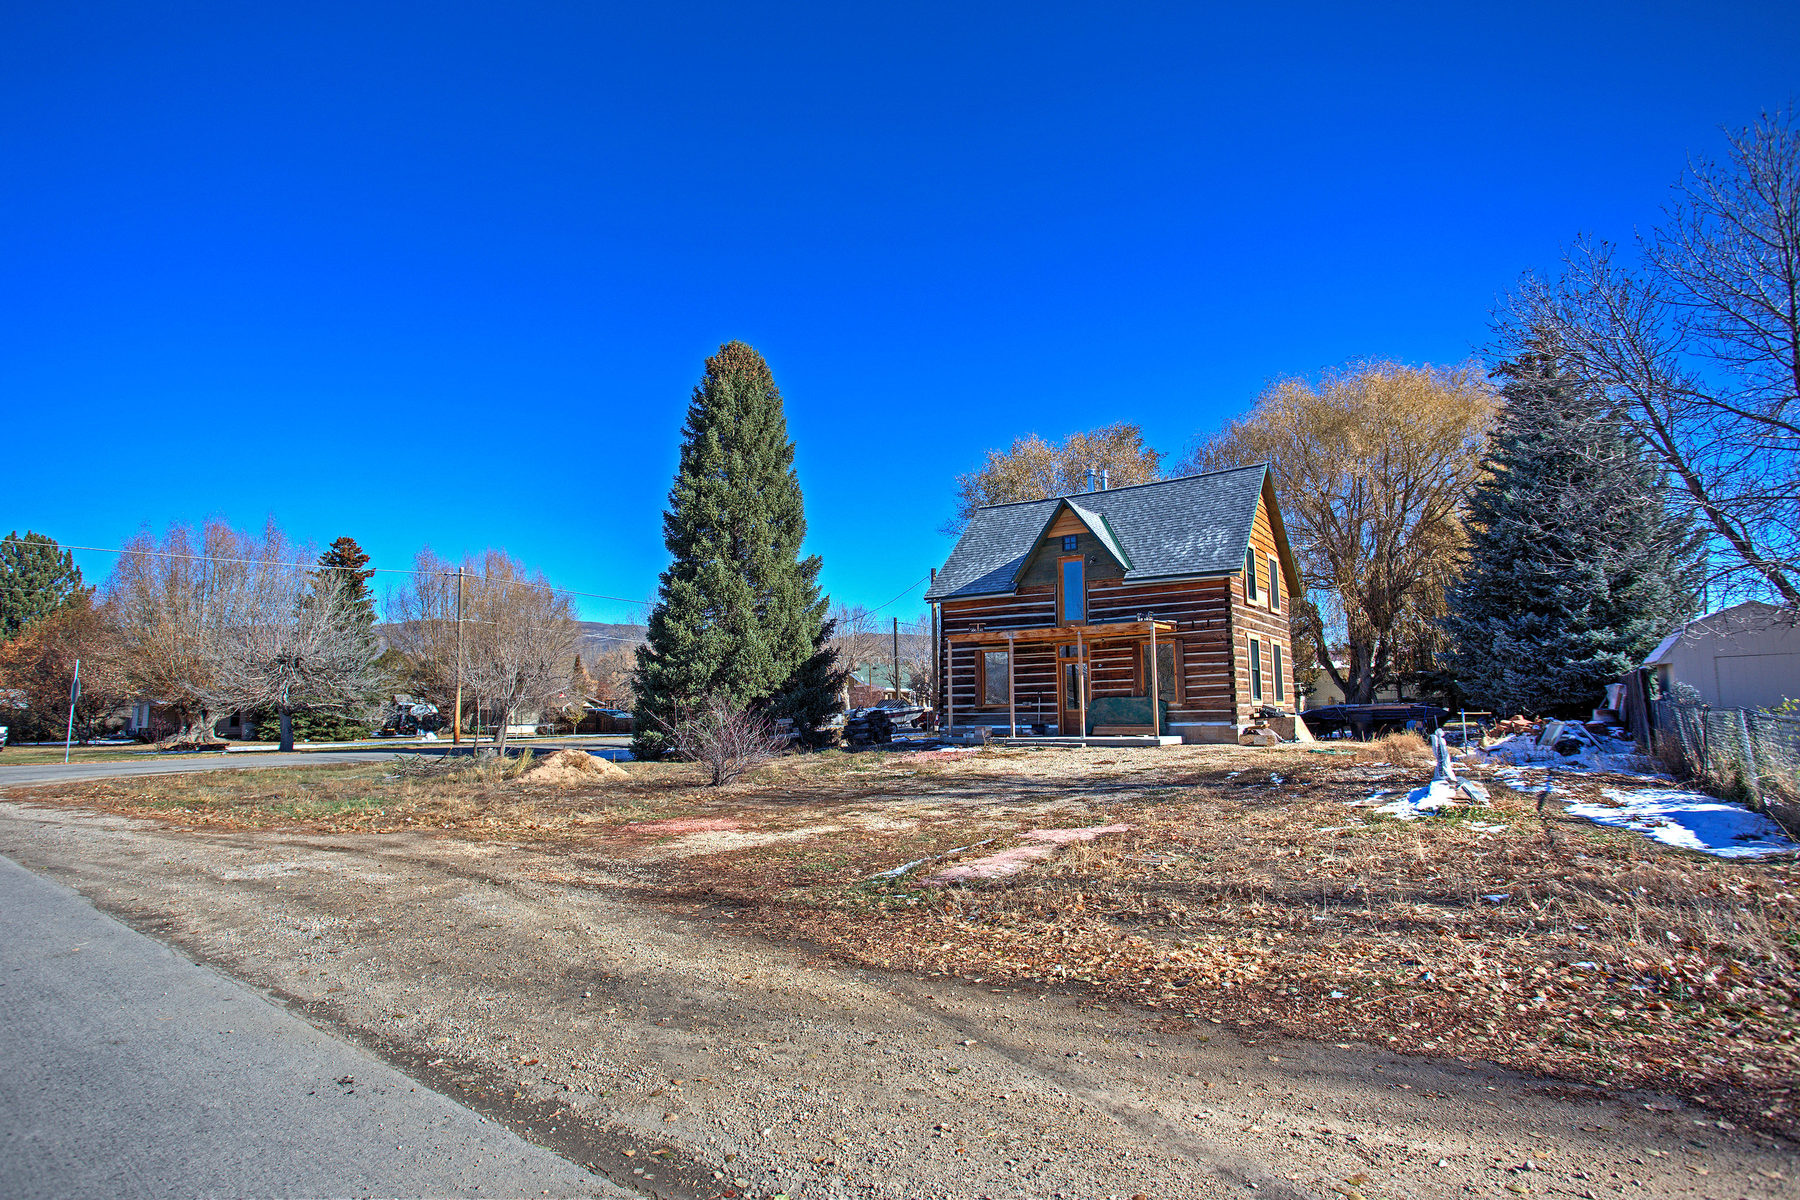 Villa per Vendita alle ore Cute and Cozy Home on .51 Acre Lot 411 East 300 South Heber, Utah 84032 Stati Uniti